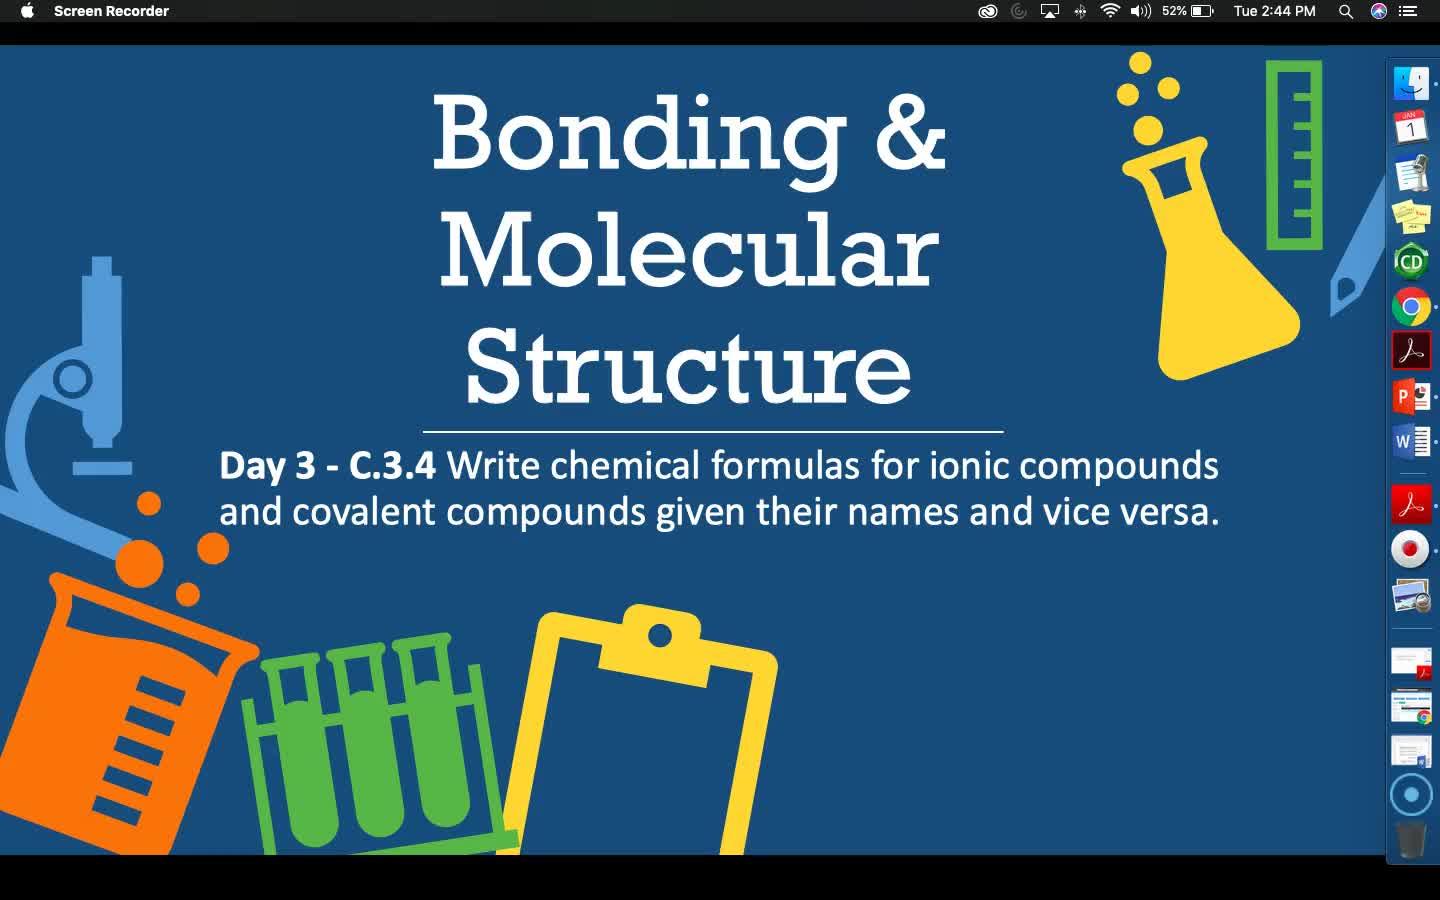 Bonding & Molecular Structure - Lesson 7